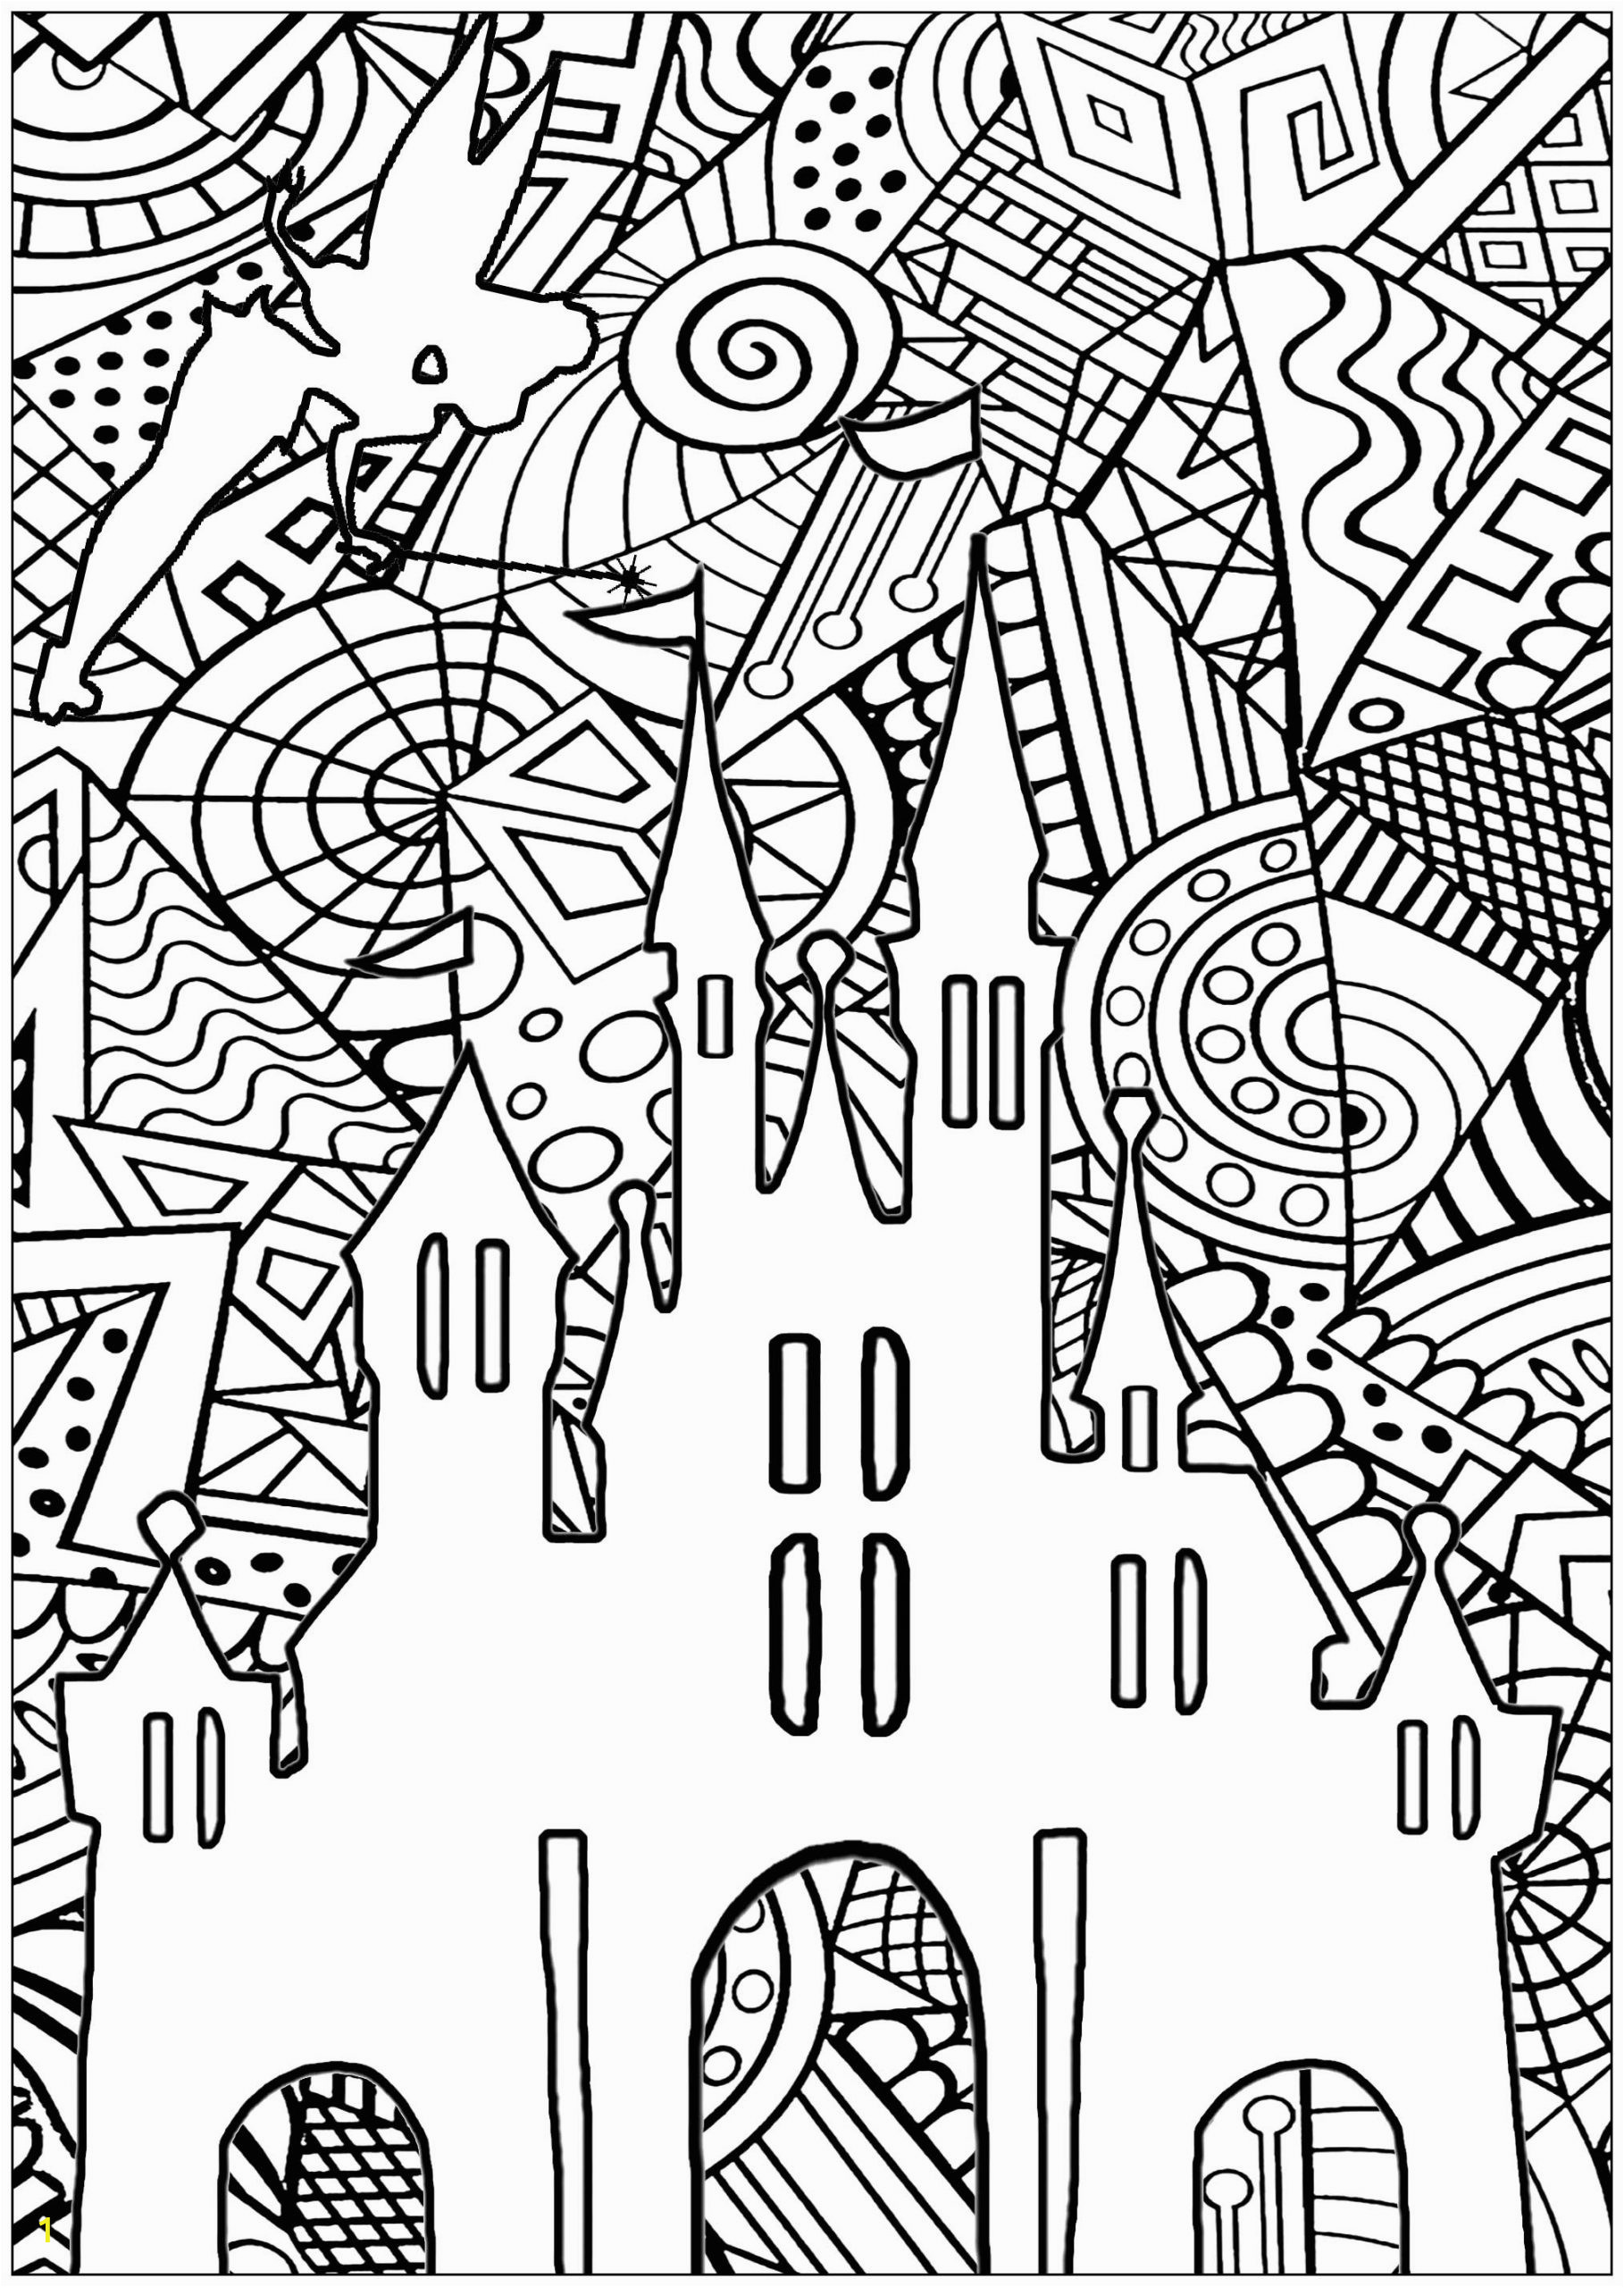 adult disney coloring boys colouring book difficult pages for adults of people merry christmas sheets excavator page insect preschool grown up to print sea turtle color by number